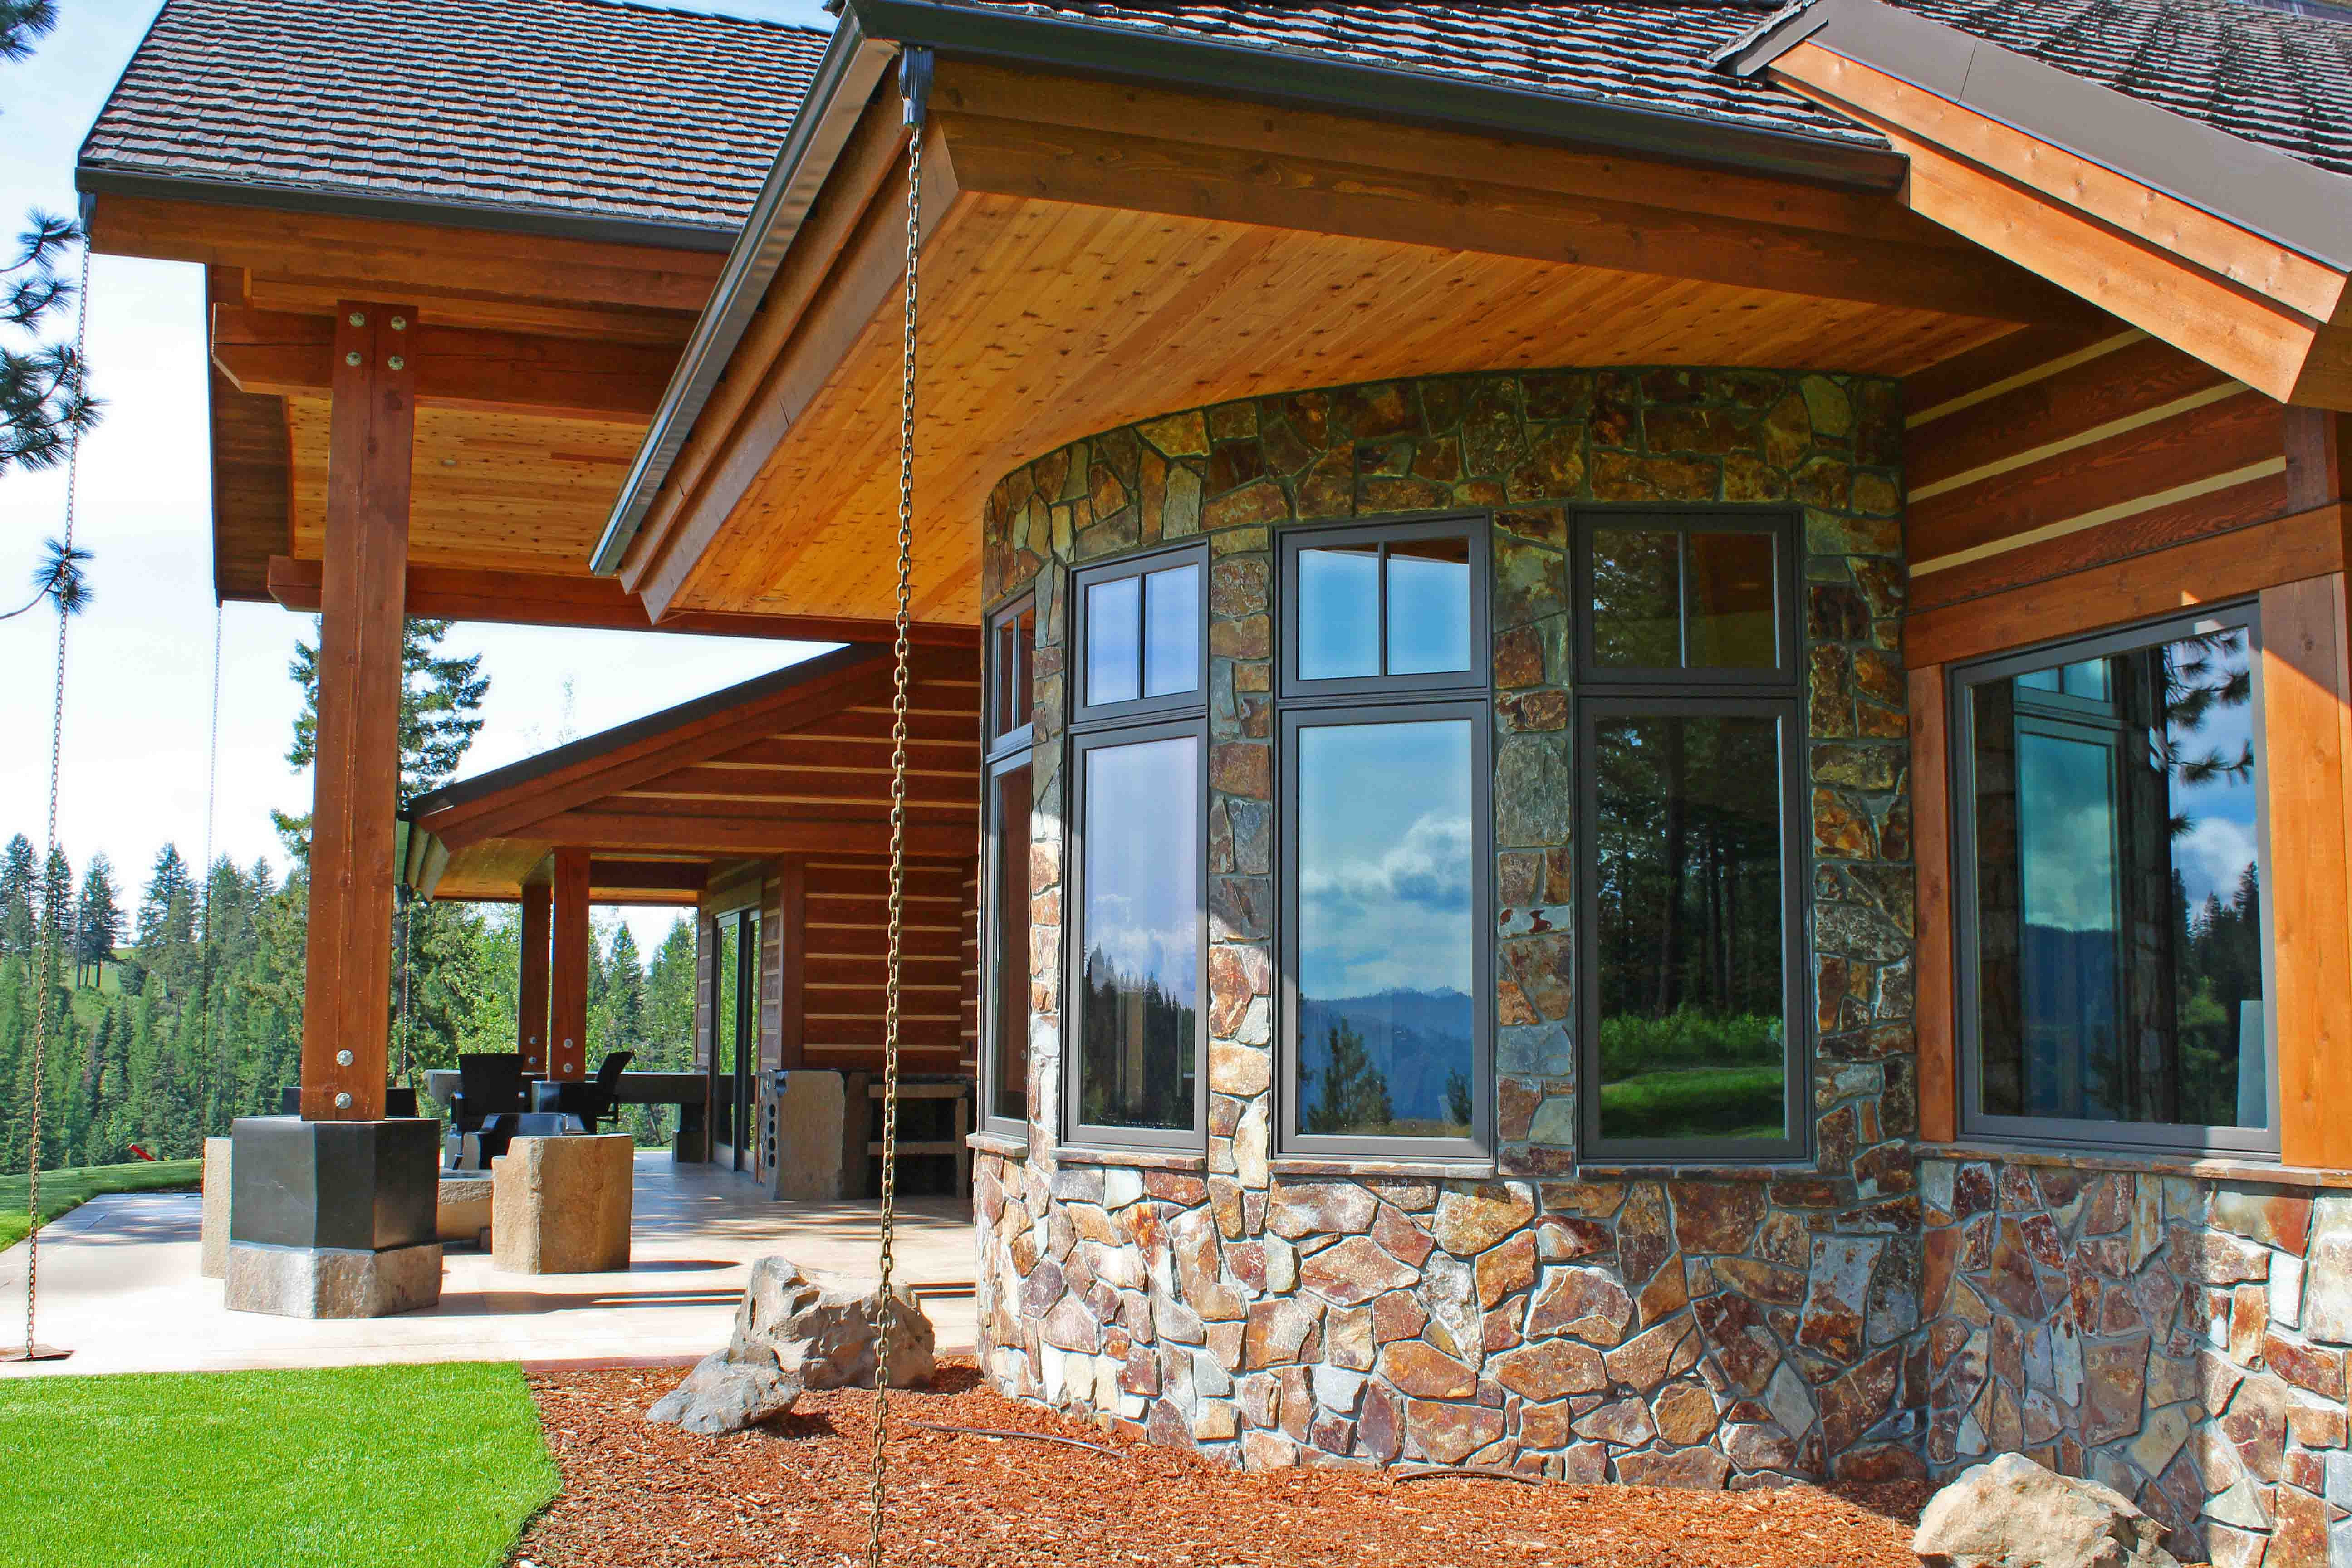 Black rock homes north idaho black rock fine homes for Cost to build a house in little rock